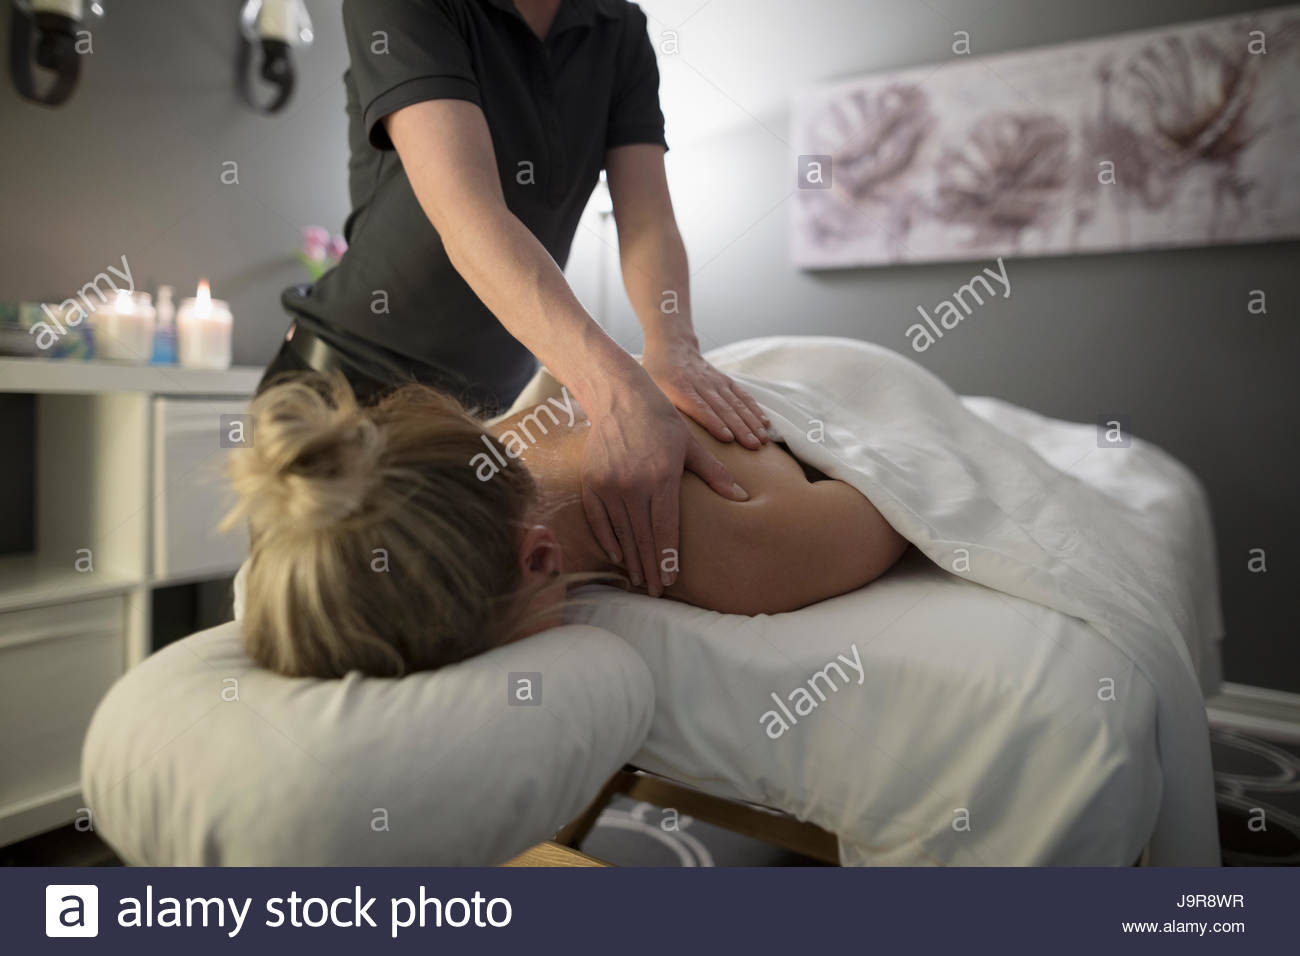 Woman receiving massage on spa massage table - Stock Image